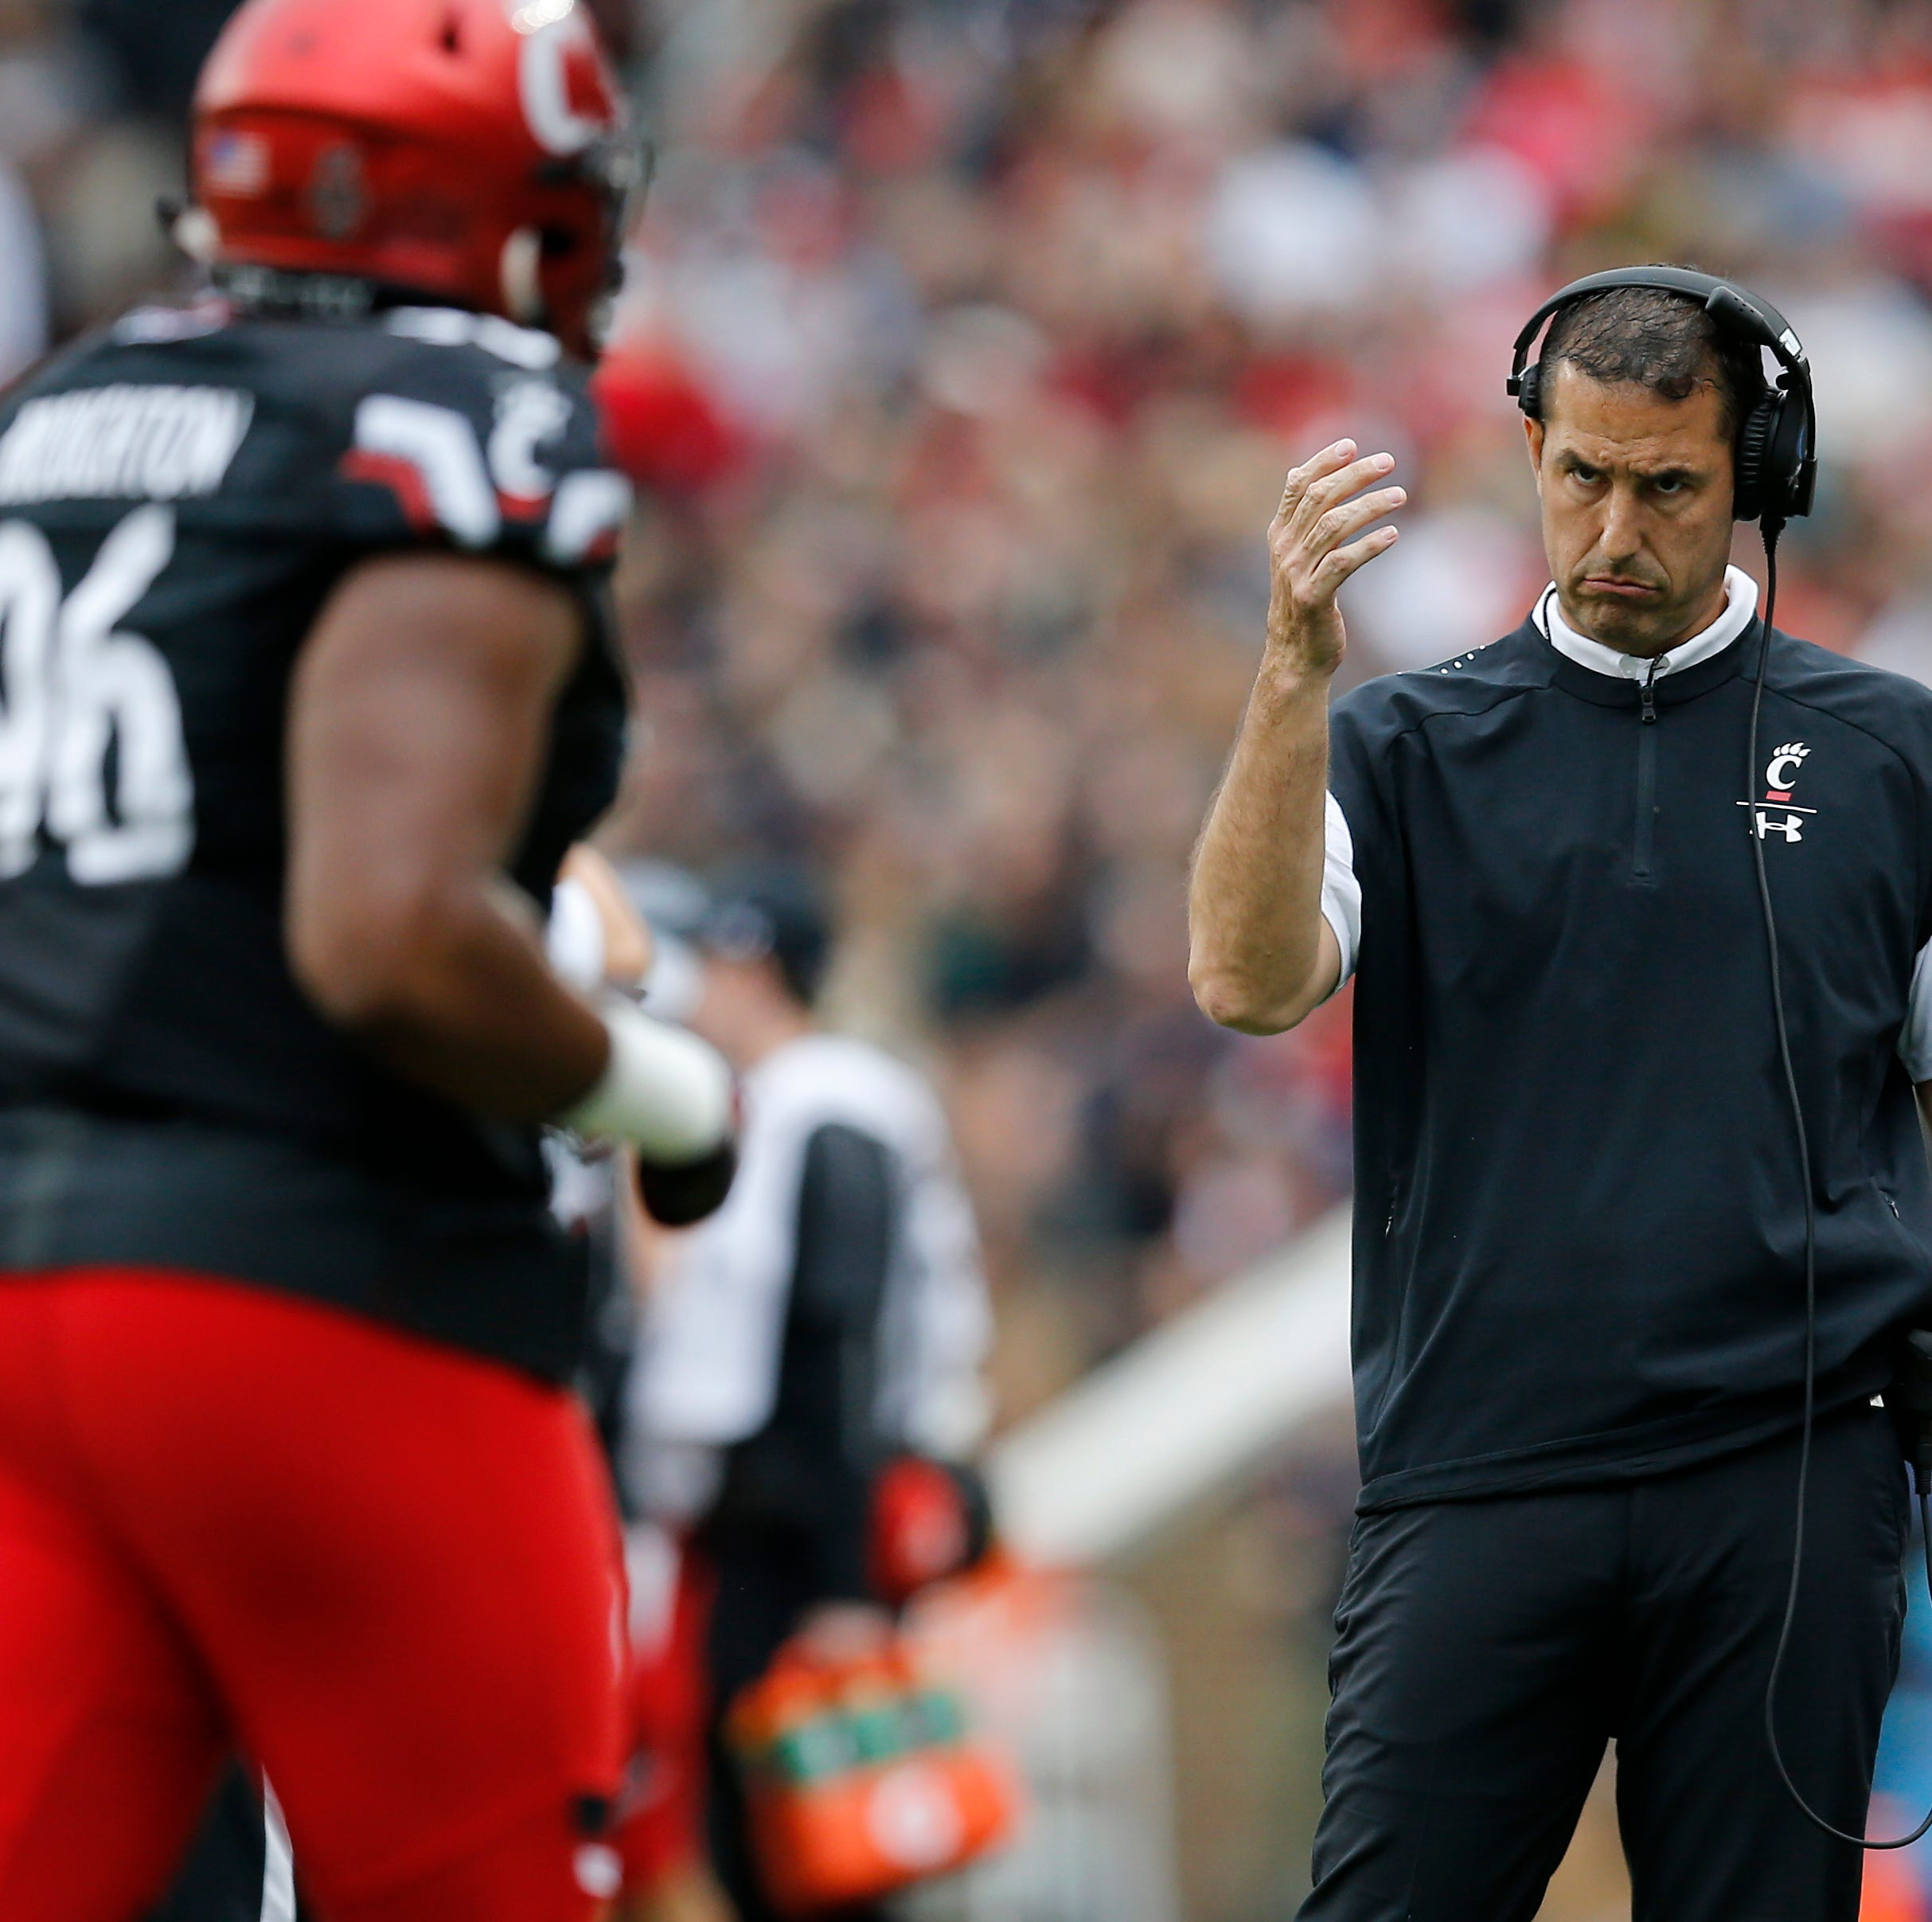 Cincinnati Bearcats coach Luke Fickell not surprised that UC is underdog at Temple